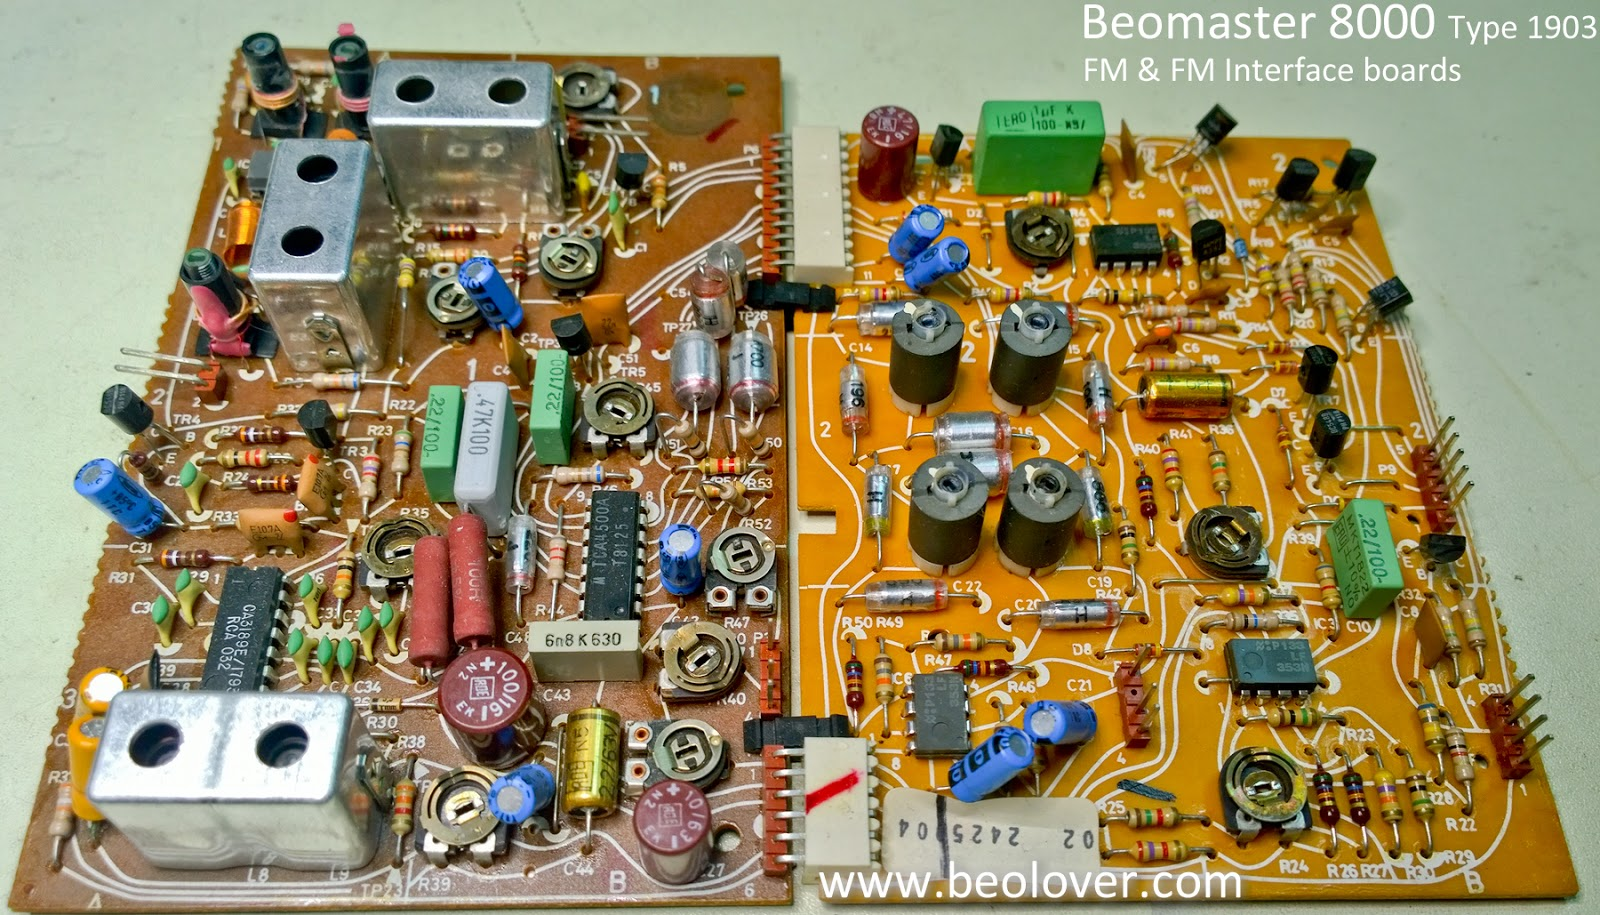 Beolover Beomaster 8000 Continuing The Board Recap Fm Circuit Here Are After Pictures